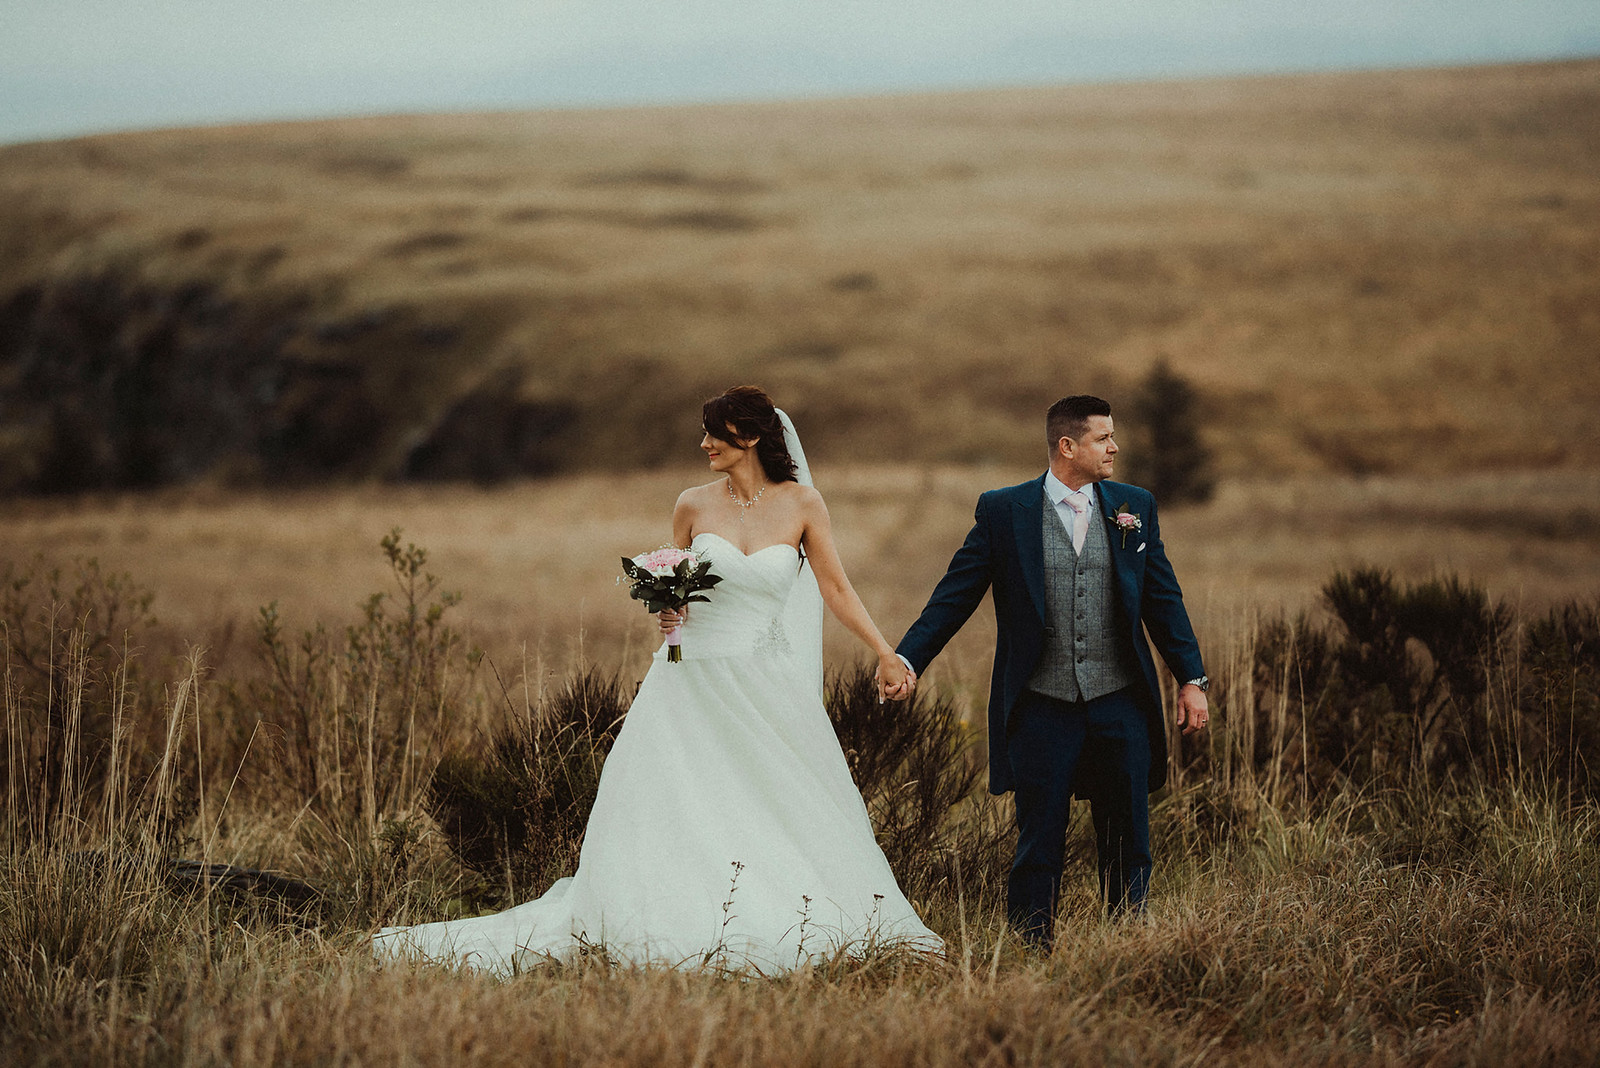 Wedding Photo of Bride and Groom in the Countryside